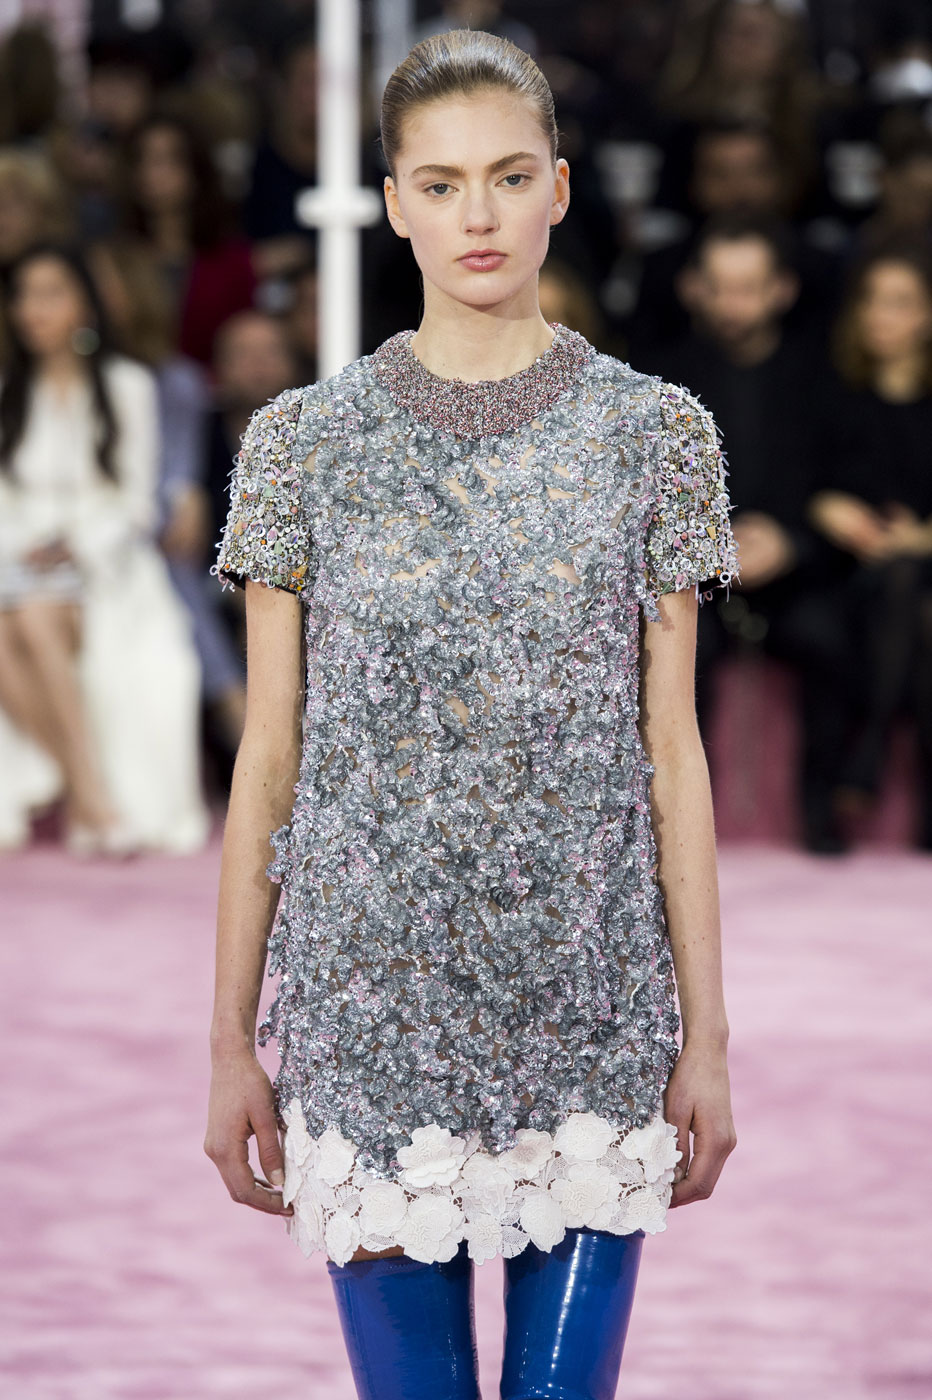 Christian-Dior-fashion-runway-show-haute-couture-paris-spring-summer-2015-the-impression-071